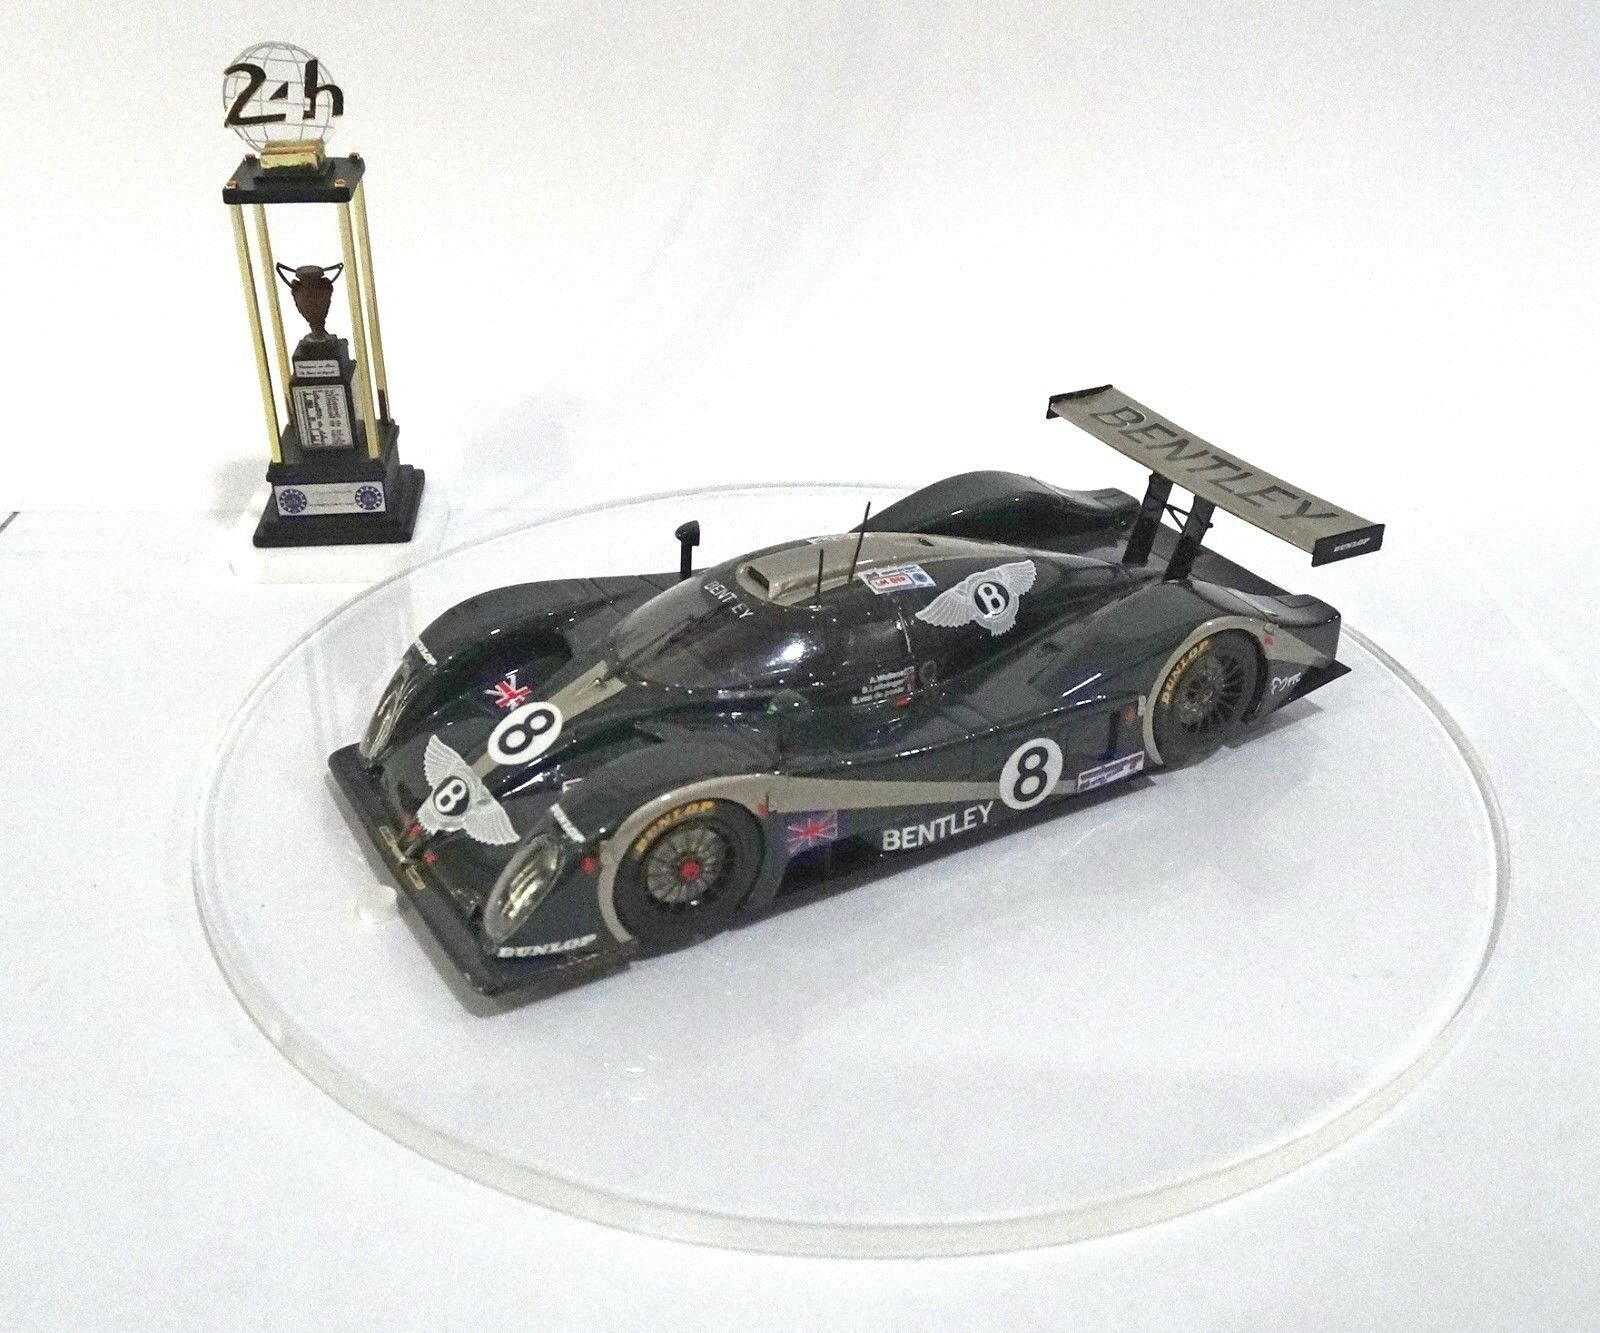 BENTLEY EXP SPEED 8  8  Le Mans 2001 Built Monté Kit 1 43 no spark minichamps